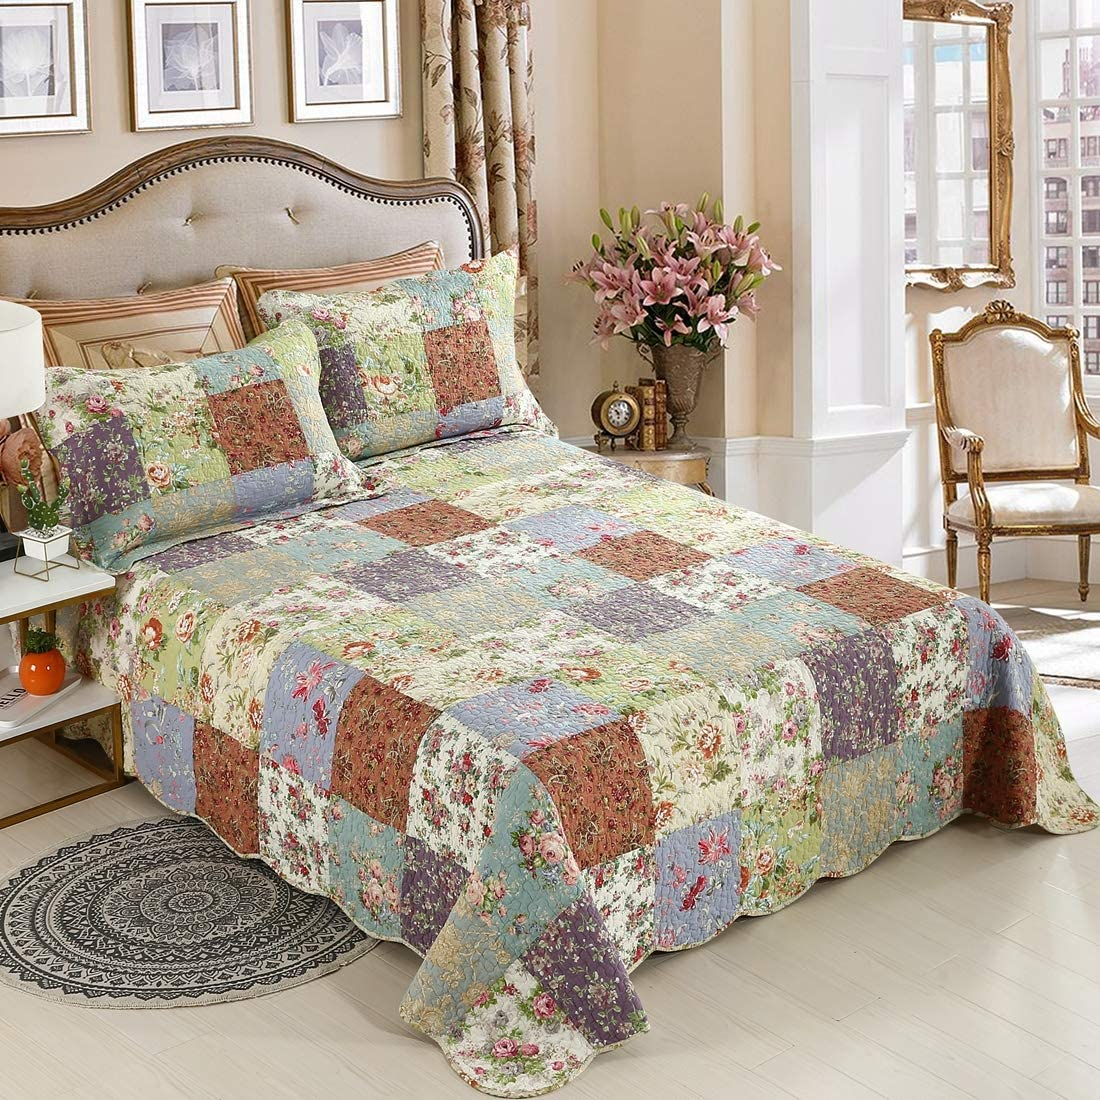 YAYIDAY Patchwork Cotton Bedspreads Set Quilt Coverlet Country Floral Printed - Lightweight Bedcover Summer Blanket Country Rustic Bedding (Patchwork Flower Queen)